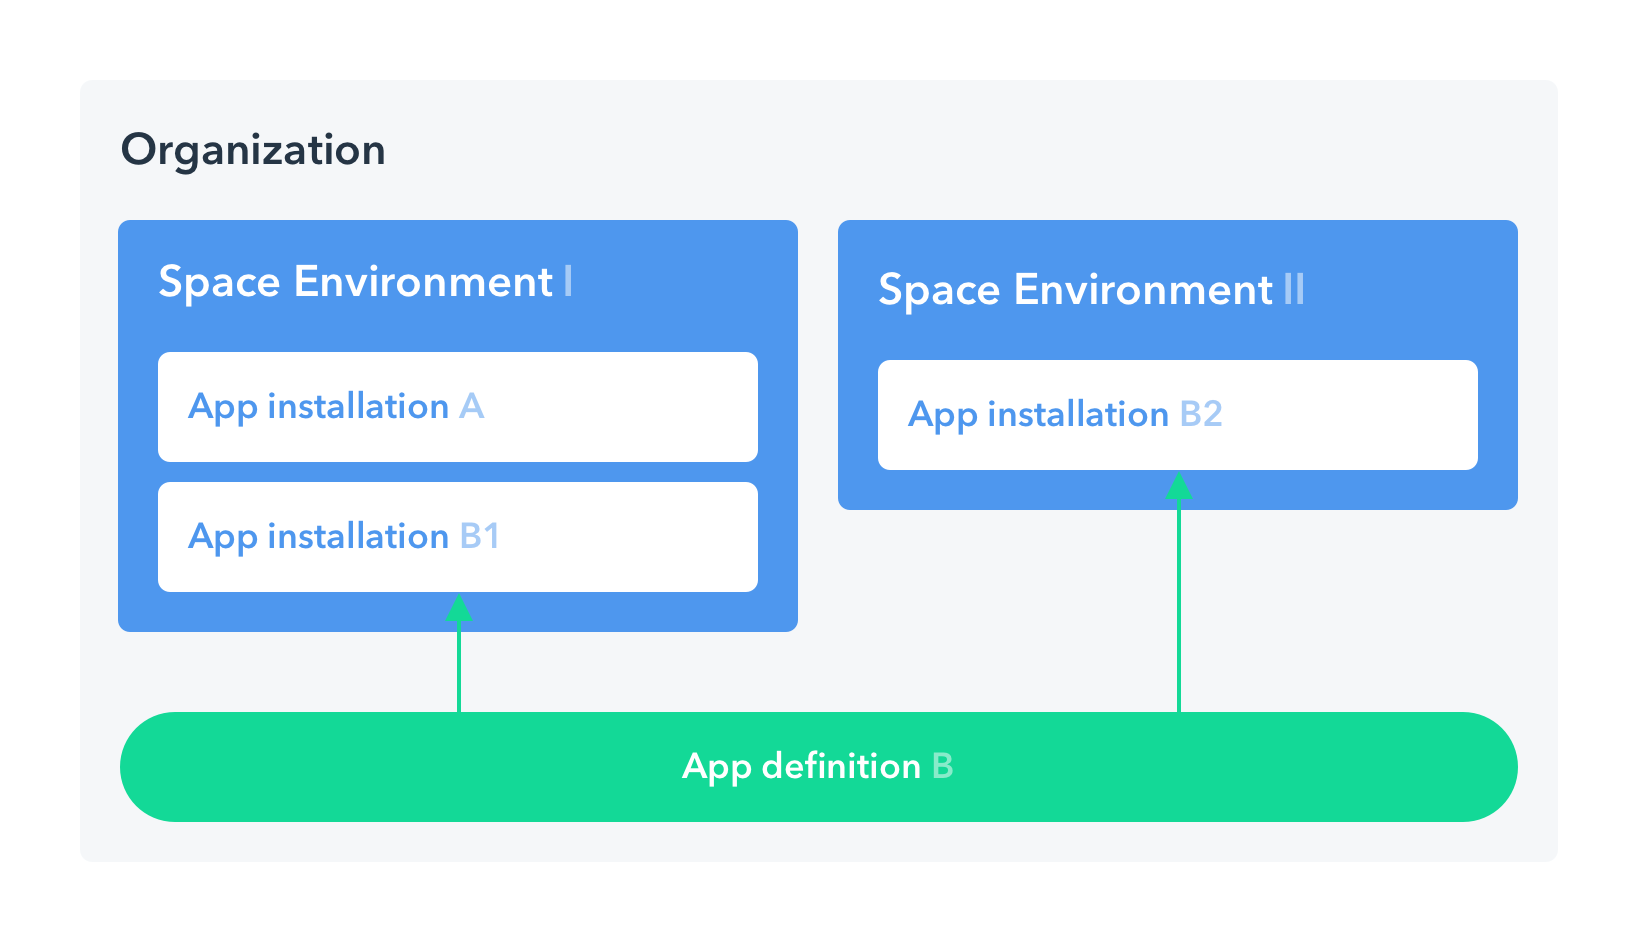 App definition and installations